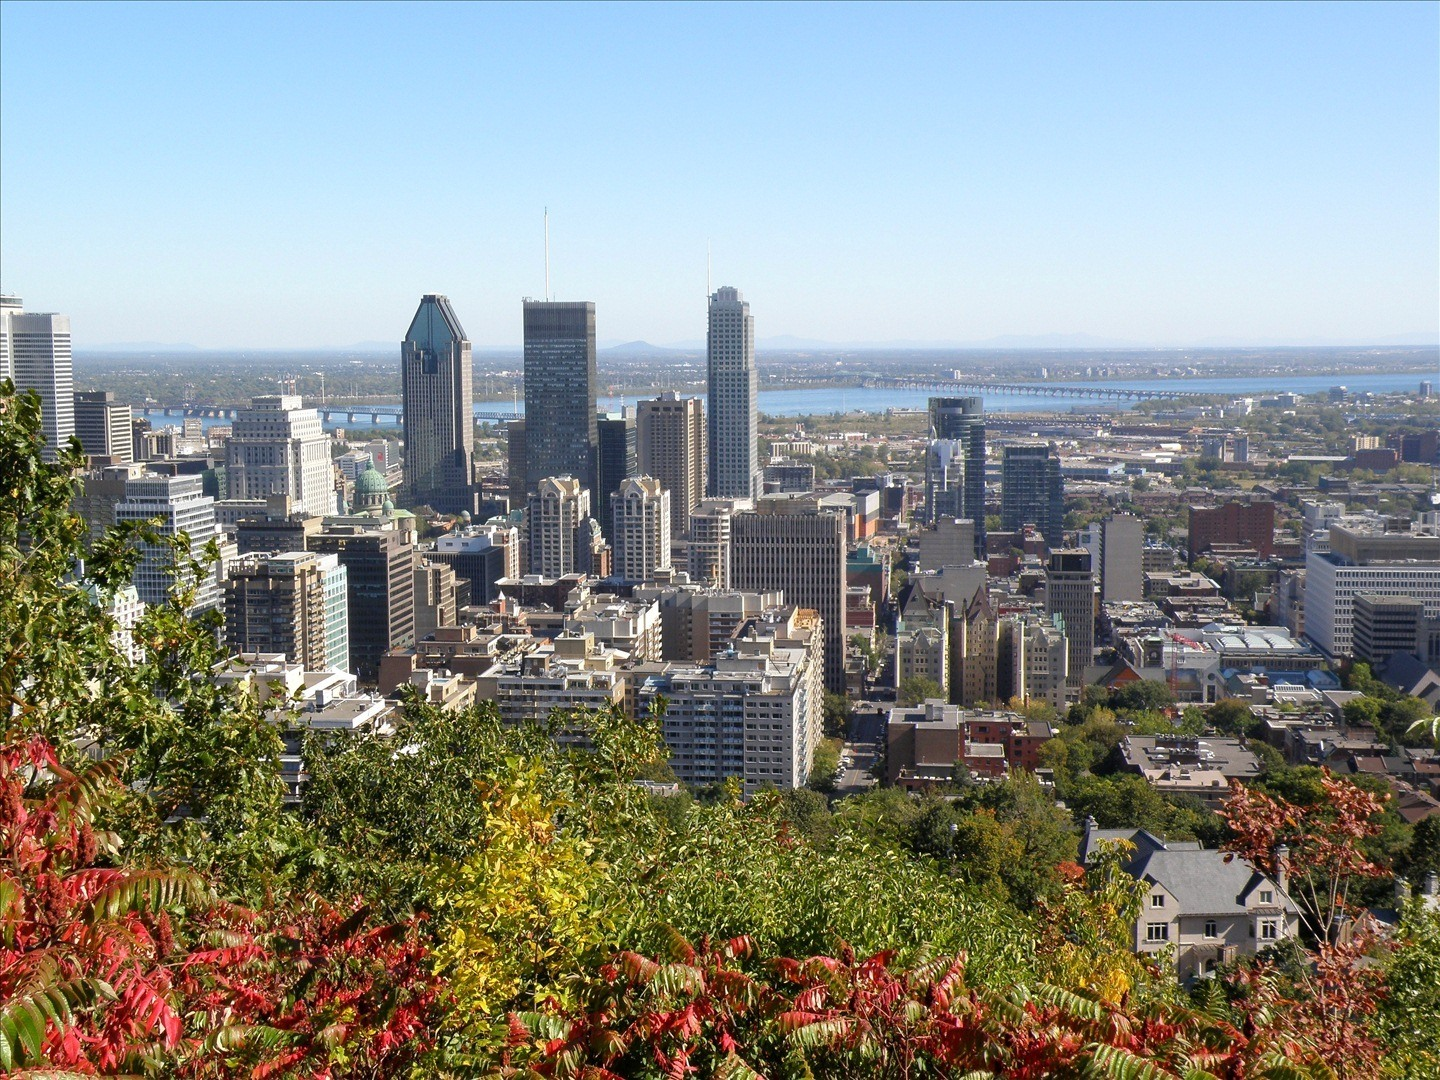 Getting a view of downtown Montreal from Mont Royal Park is one of the best things to do in Montreal